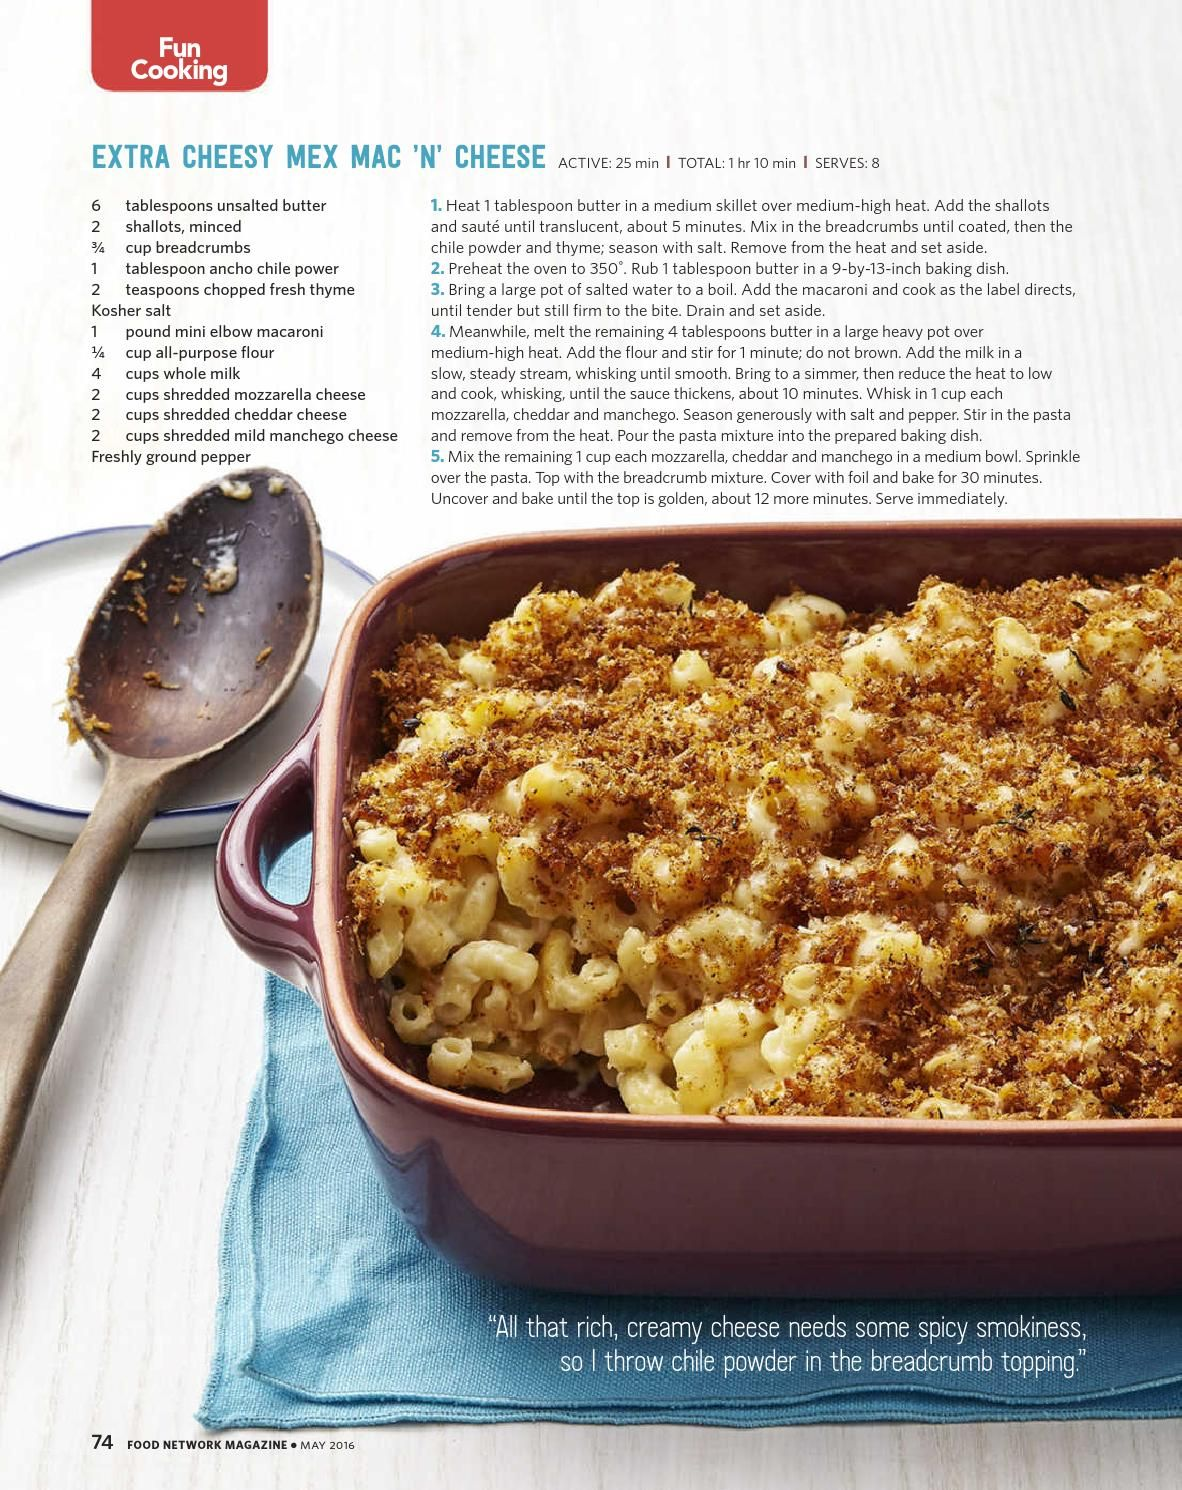 Food network magazine may 2016 recipe cards magazines and 500 food network magazine may 2016 recipe cardsmagazinesfavorite forumfinder Choice Image